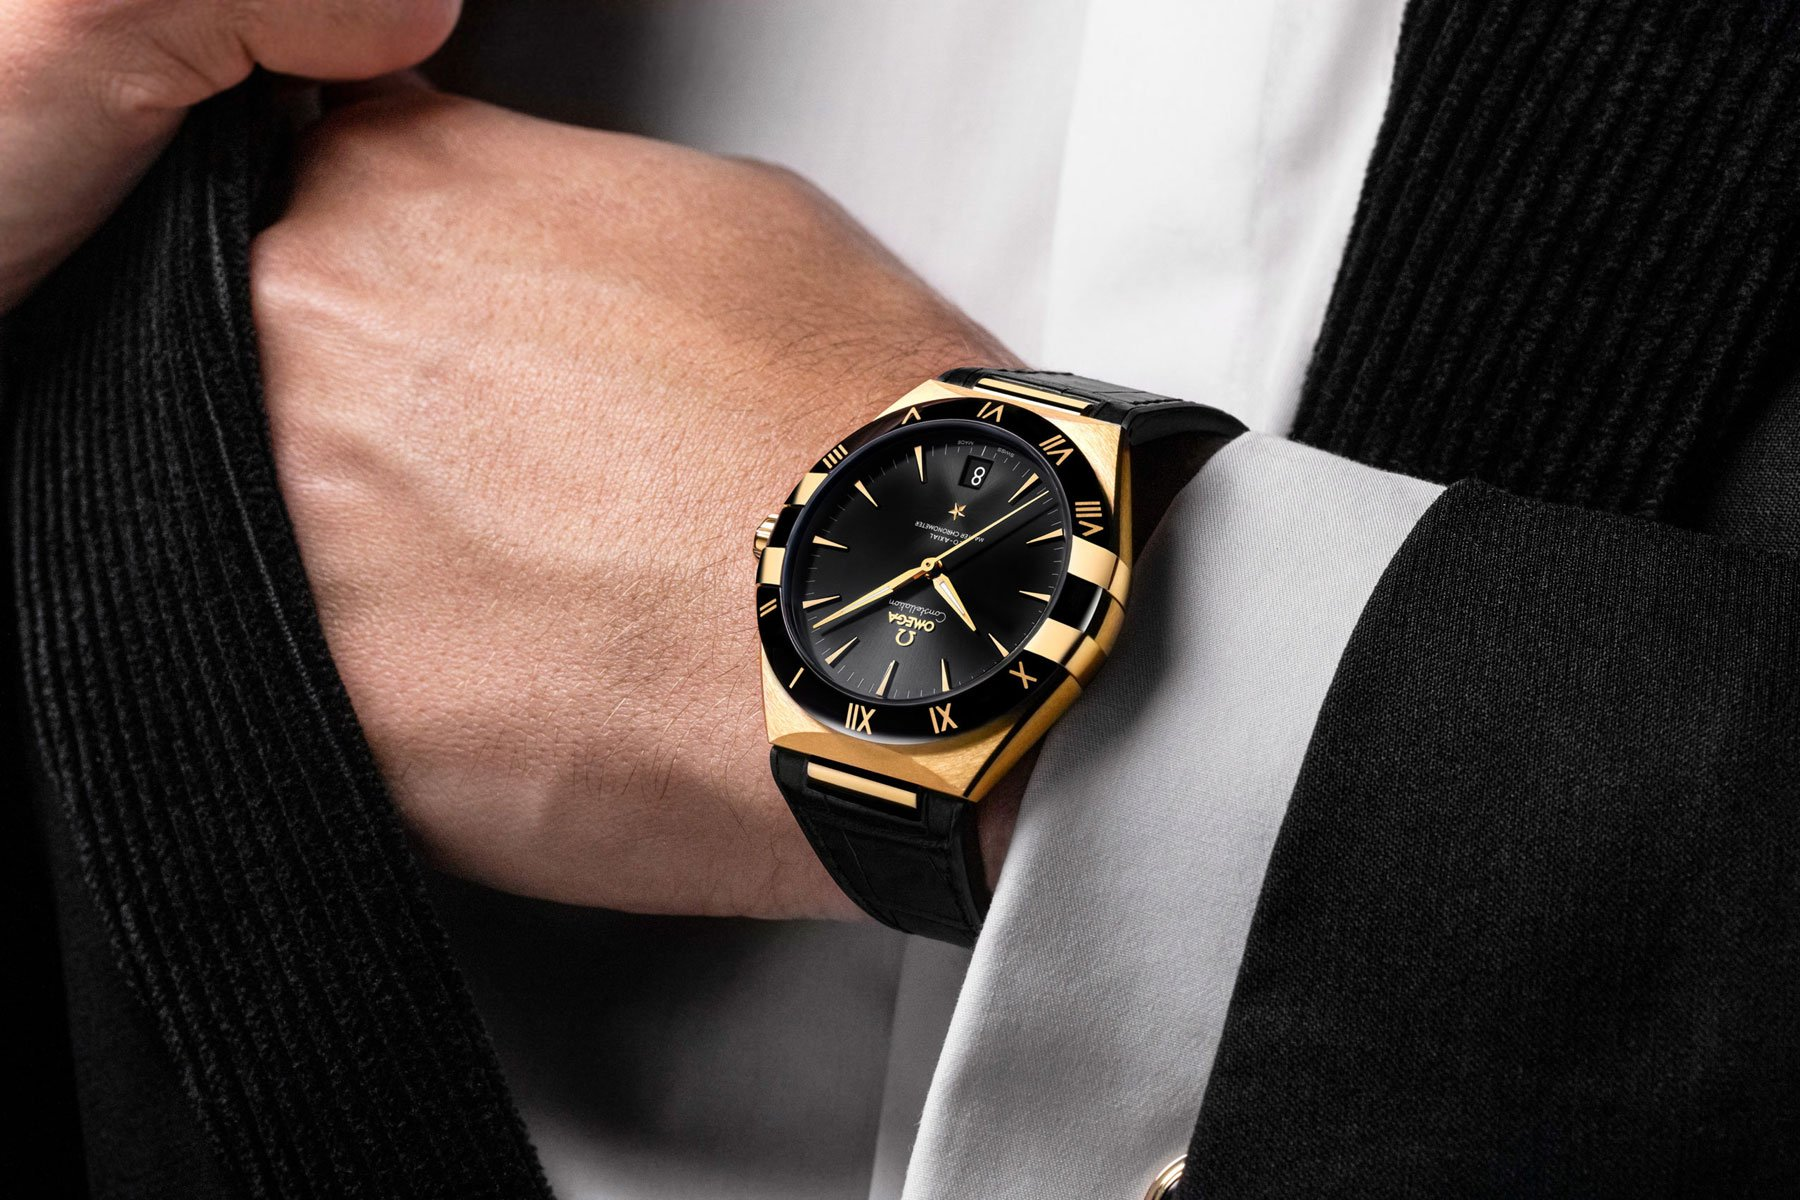 A complete review of Omega's new timepieces